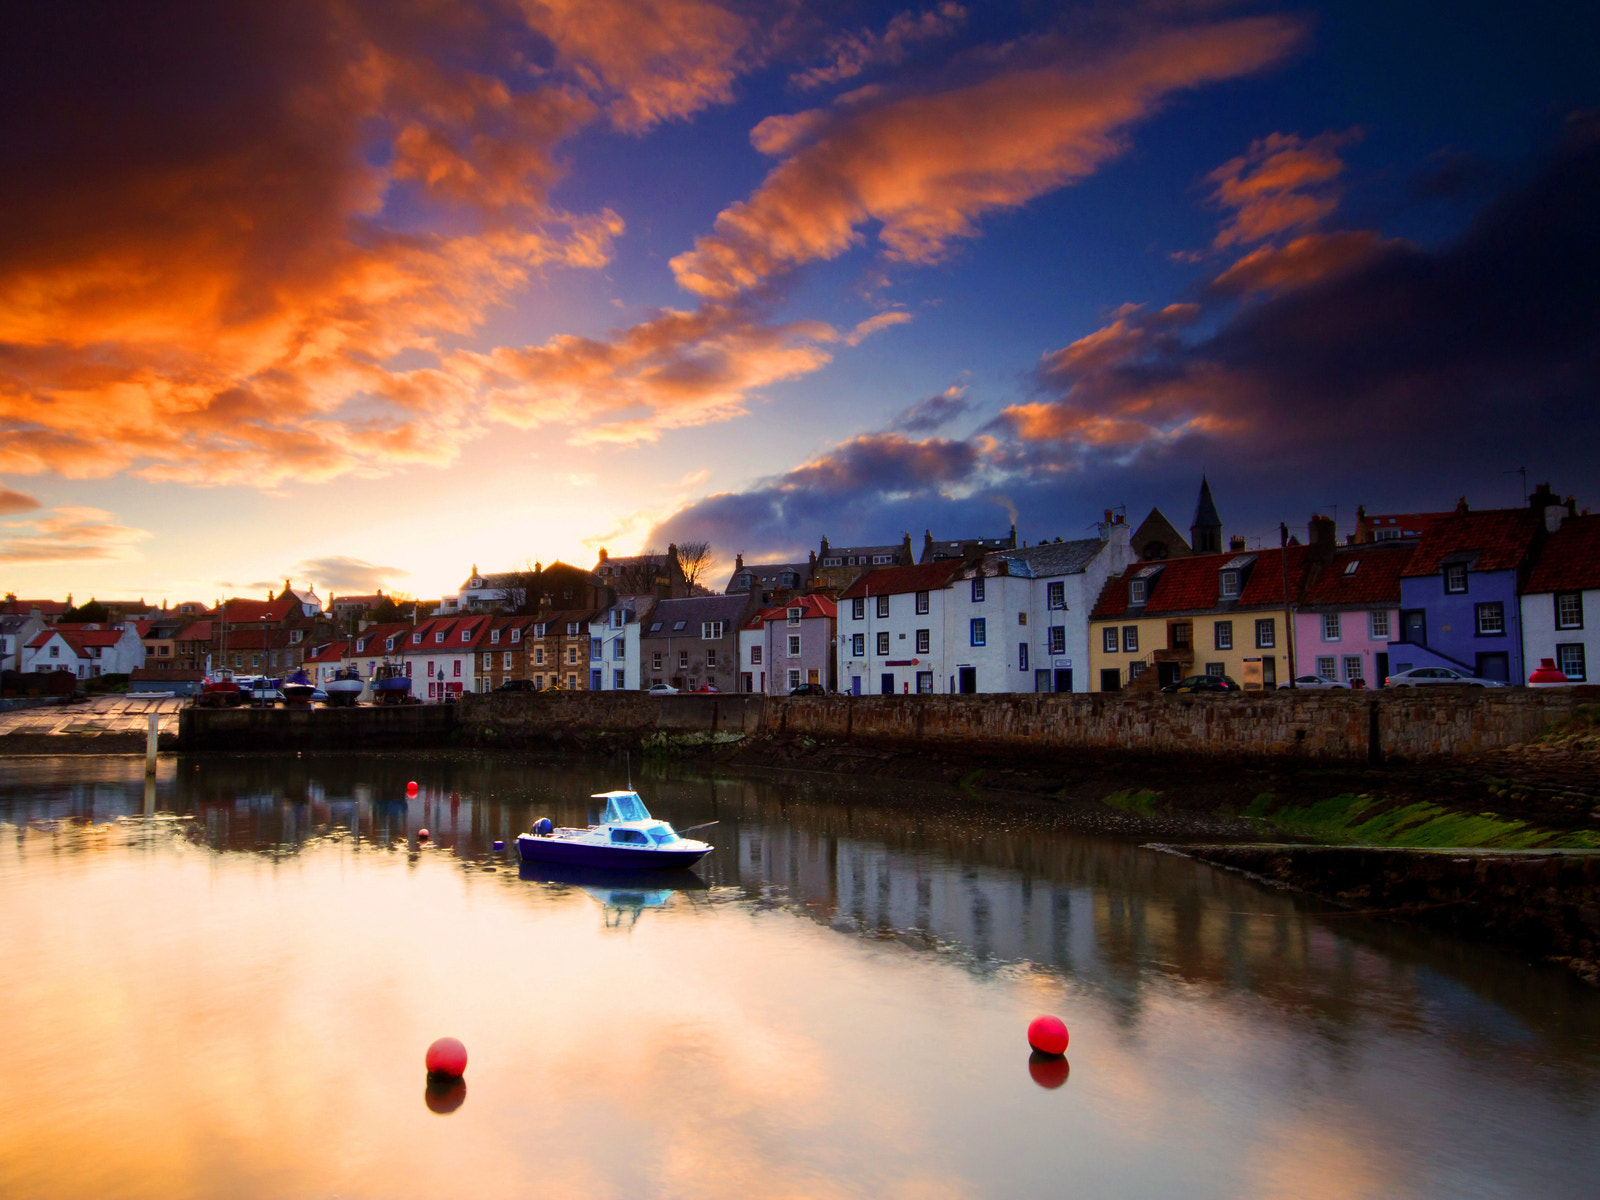 Photograph Wee Boatie by Simon Cameron on 500px